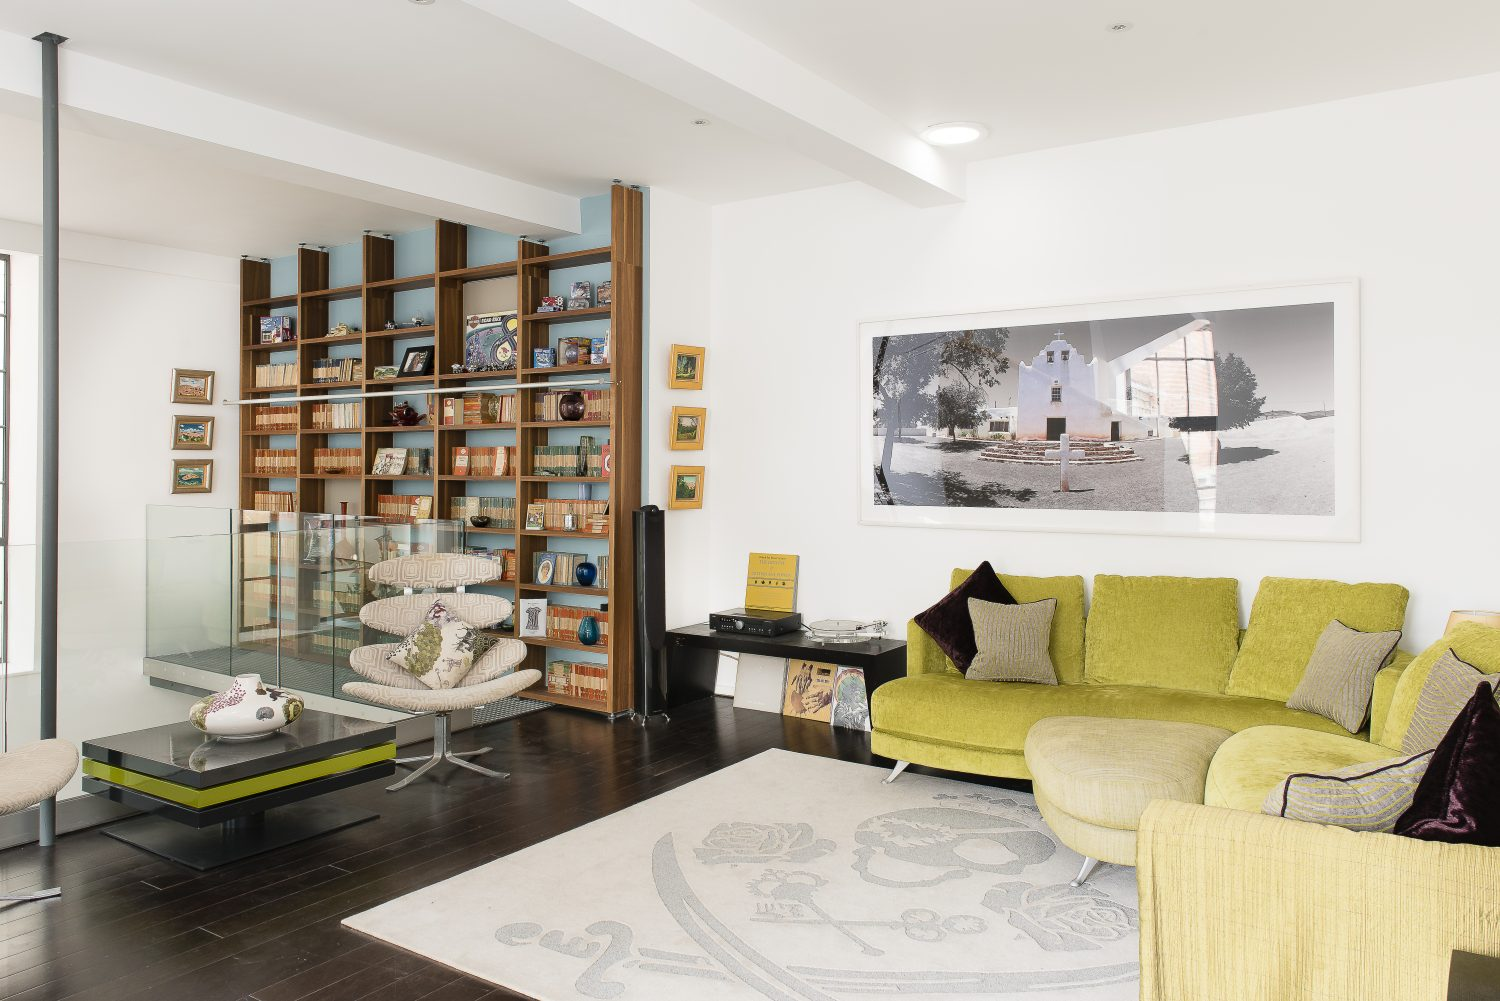 A sitting area on the first floor. The sofa is by Ligne Roset and the photograph of Pueblo Laguna in Mexico is by Boyd & Evans. The skull and crossbones rug is from Sunniva in Tunbridge Wells